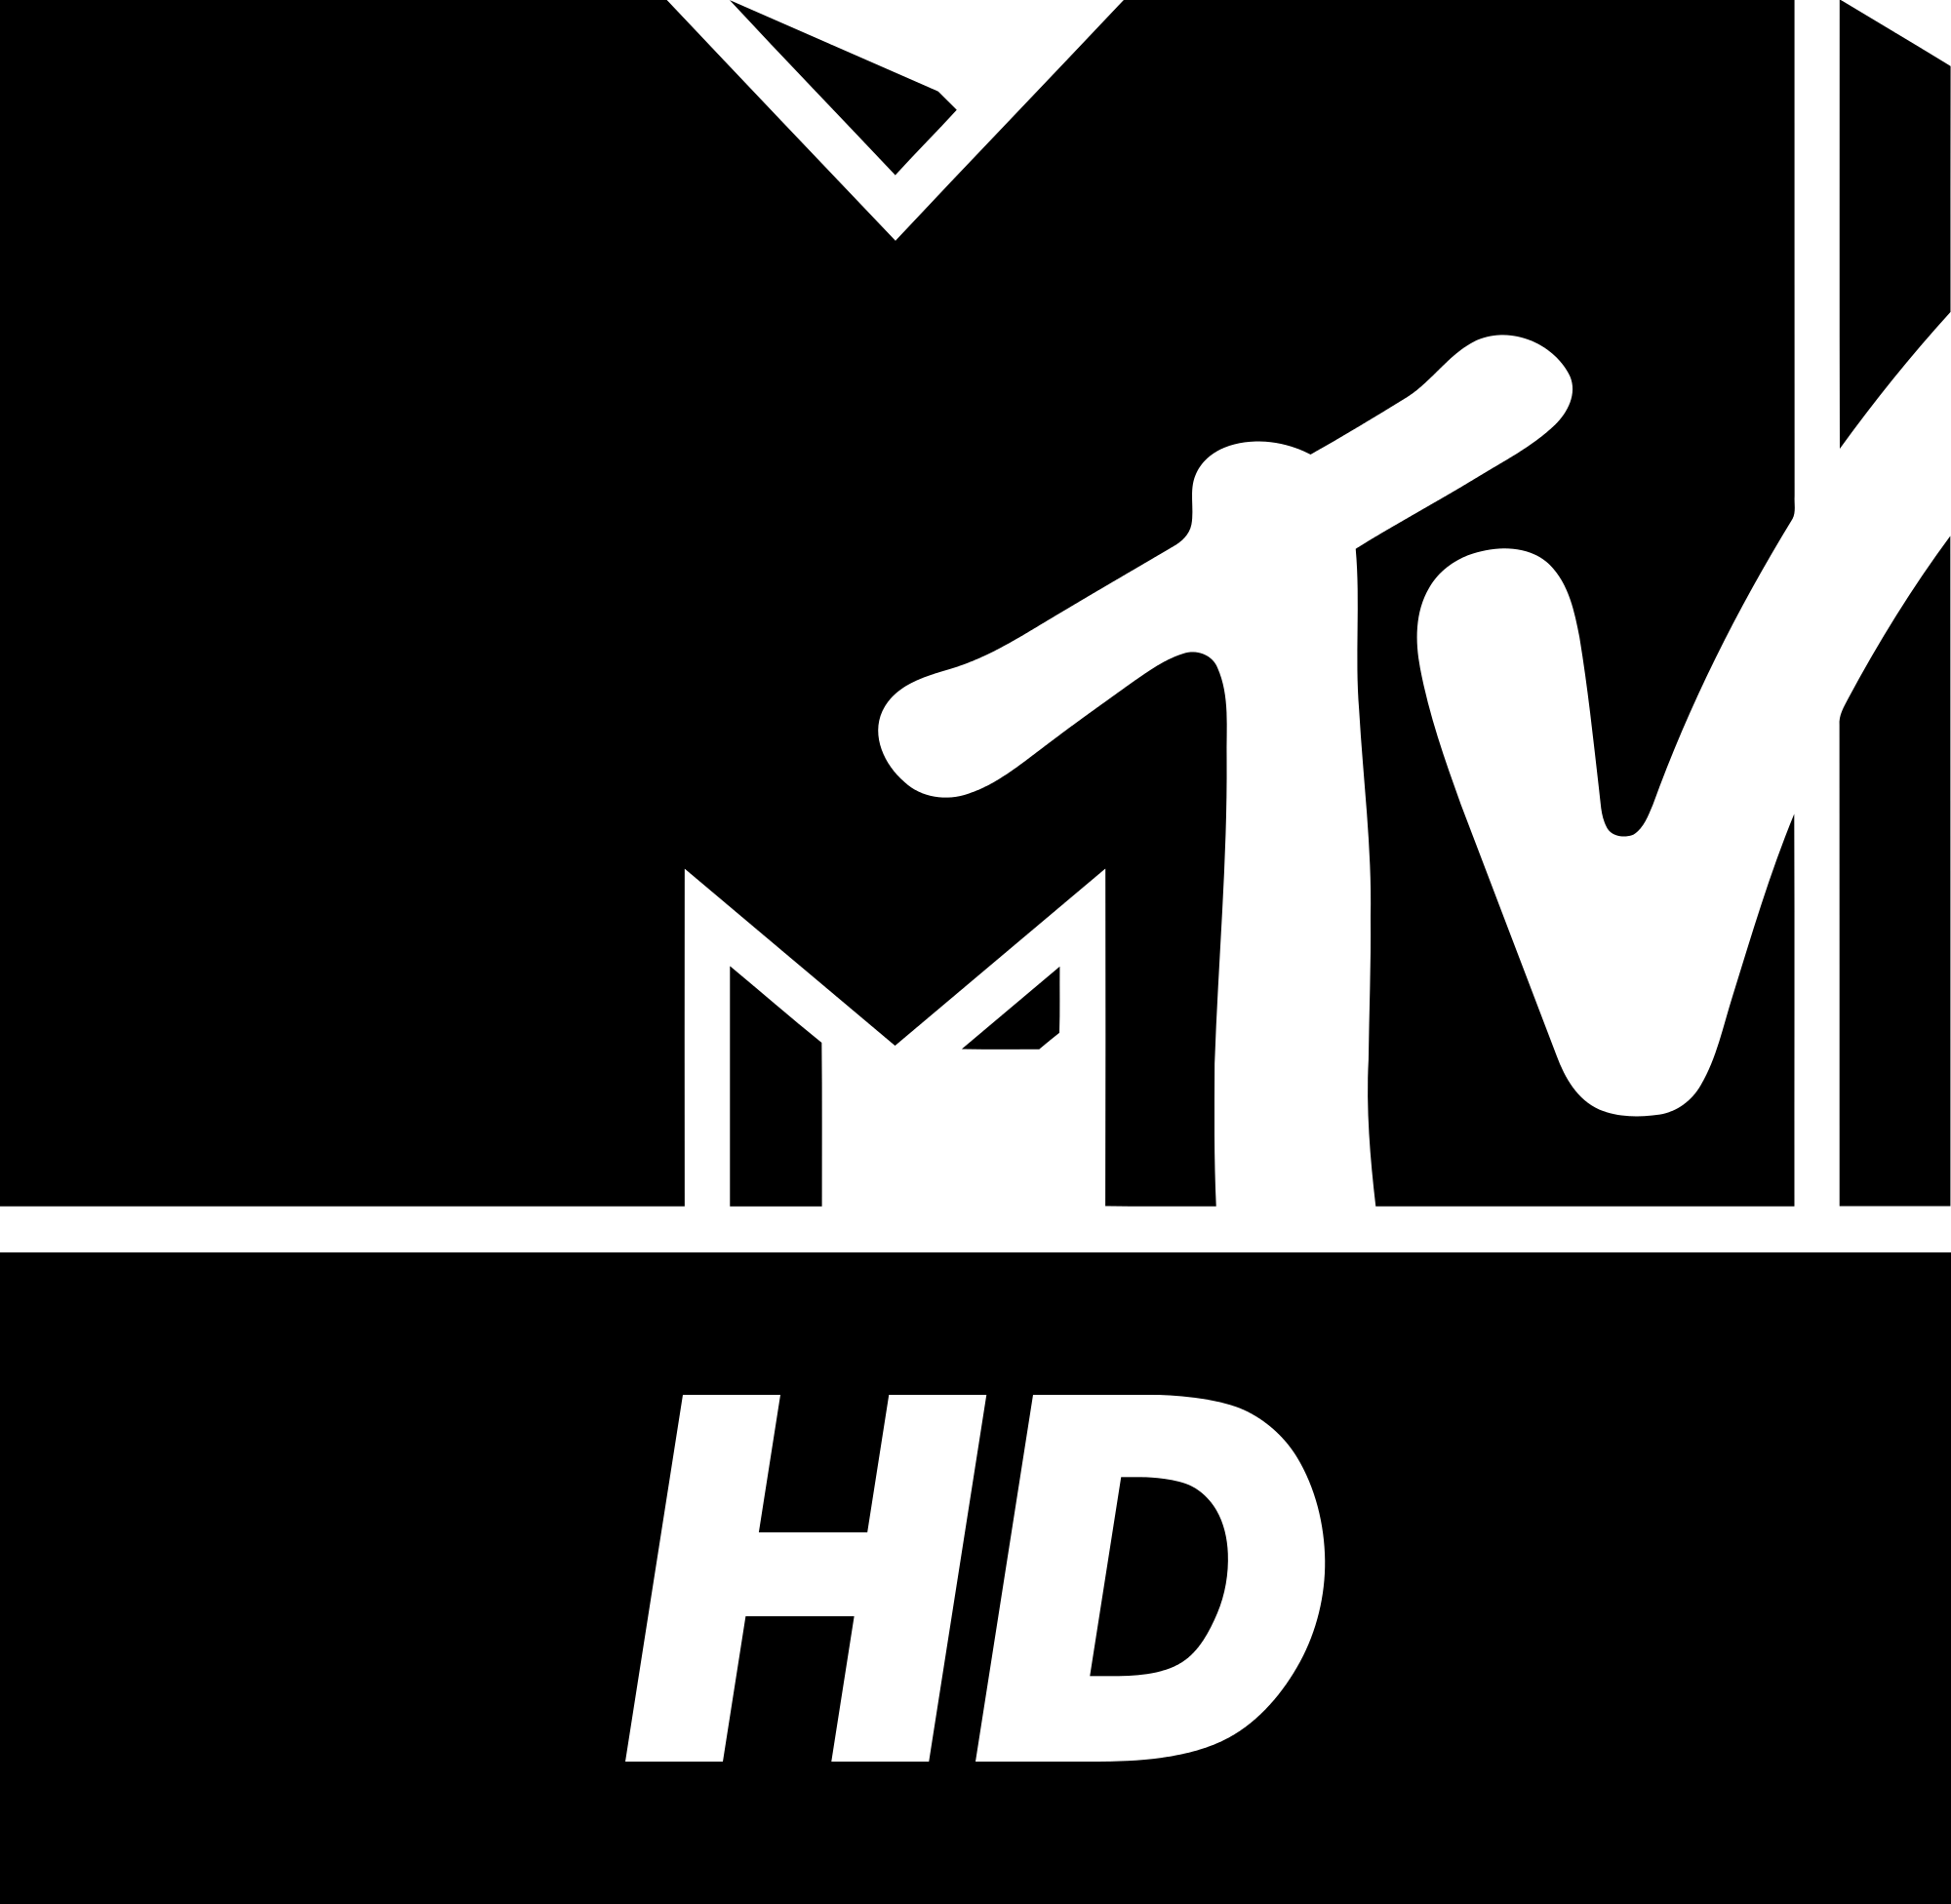 Mtv logo png. File hd svg wikimedia